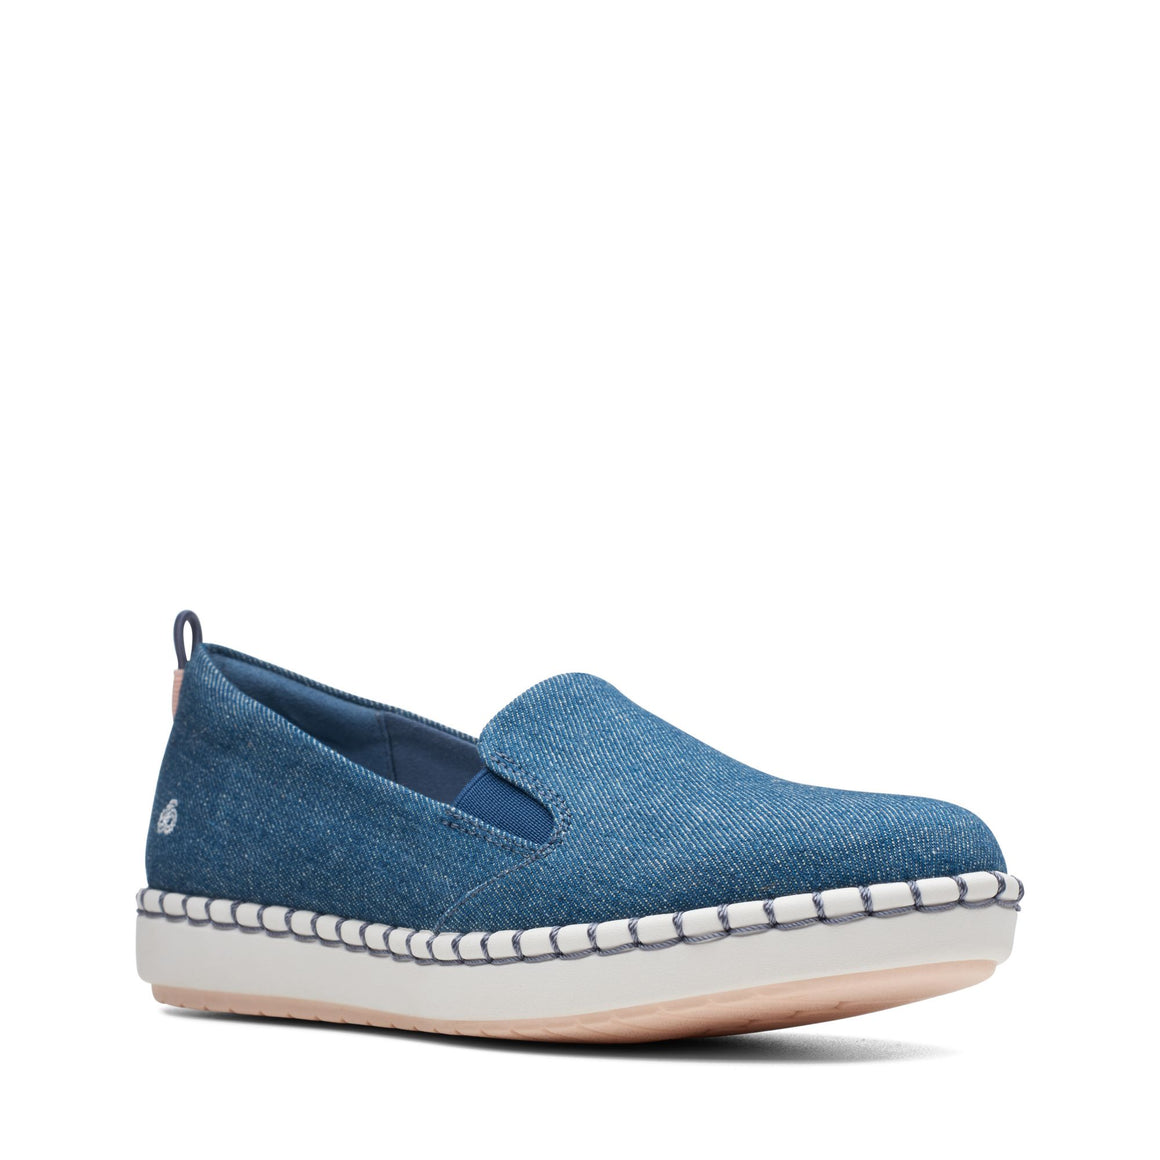 Clarks Women's Step Glow Slip On - Denim - ShoeShackOnline